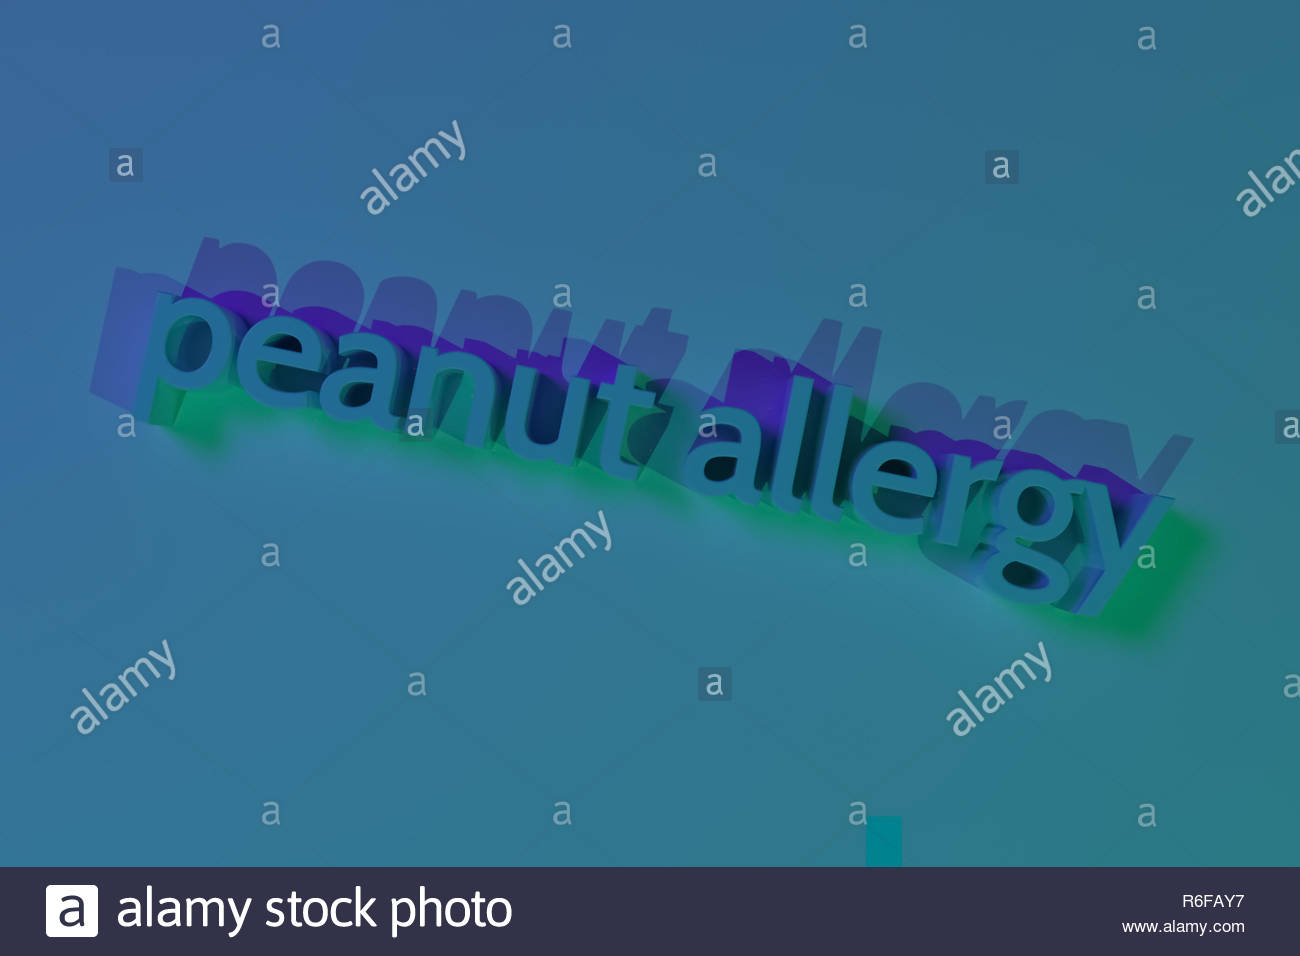 Peanut allergy keywords CGI typography For web page wallpaper 1300x956